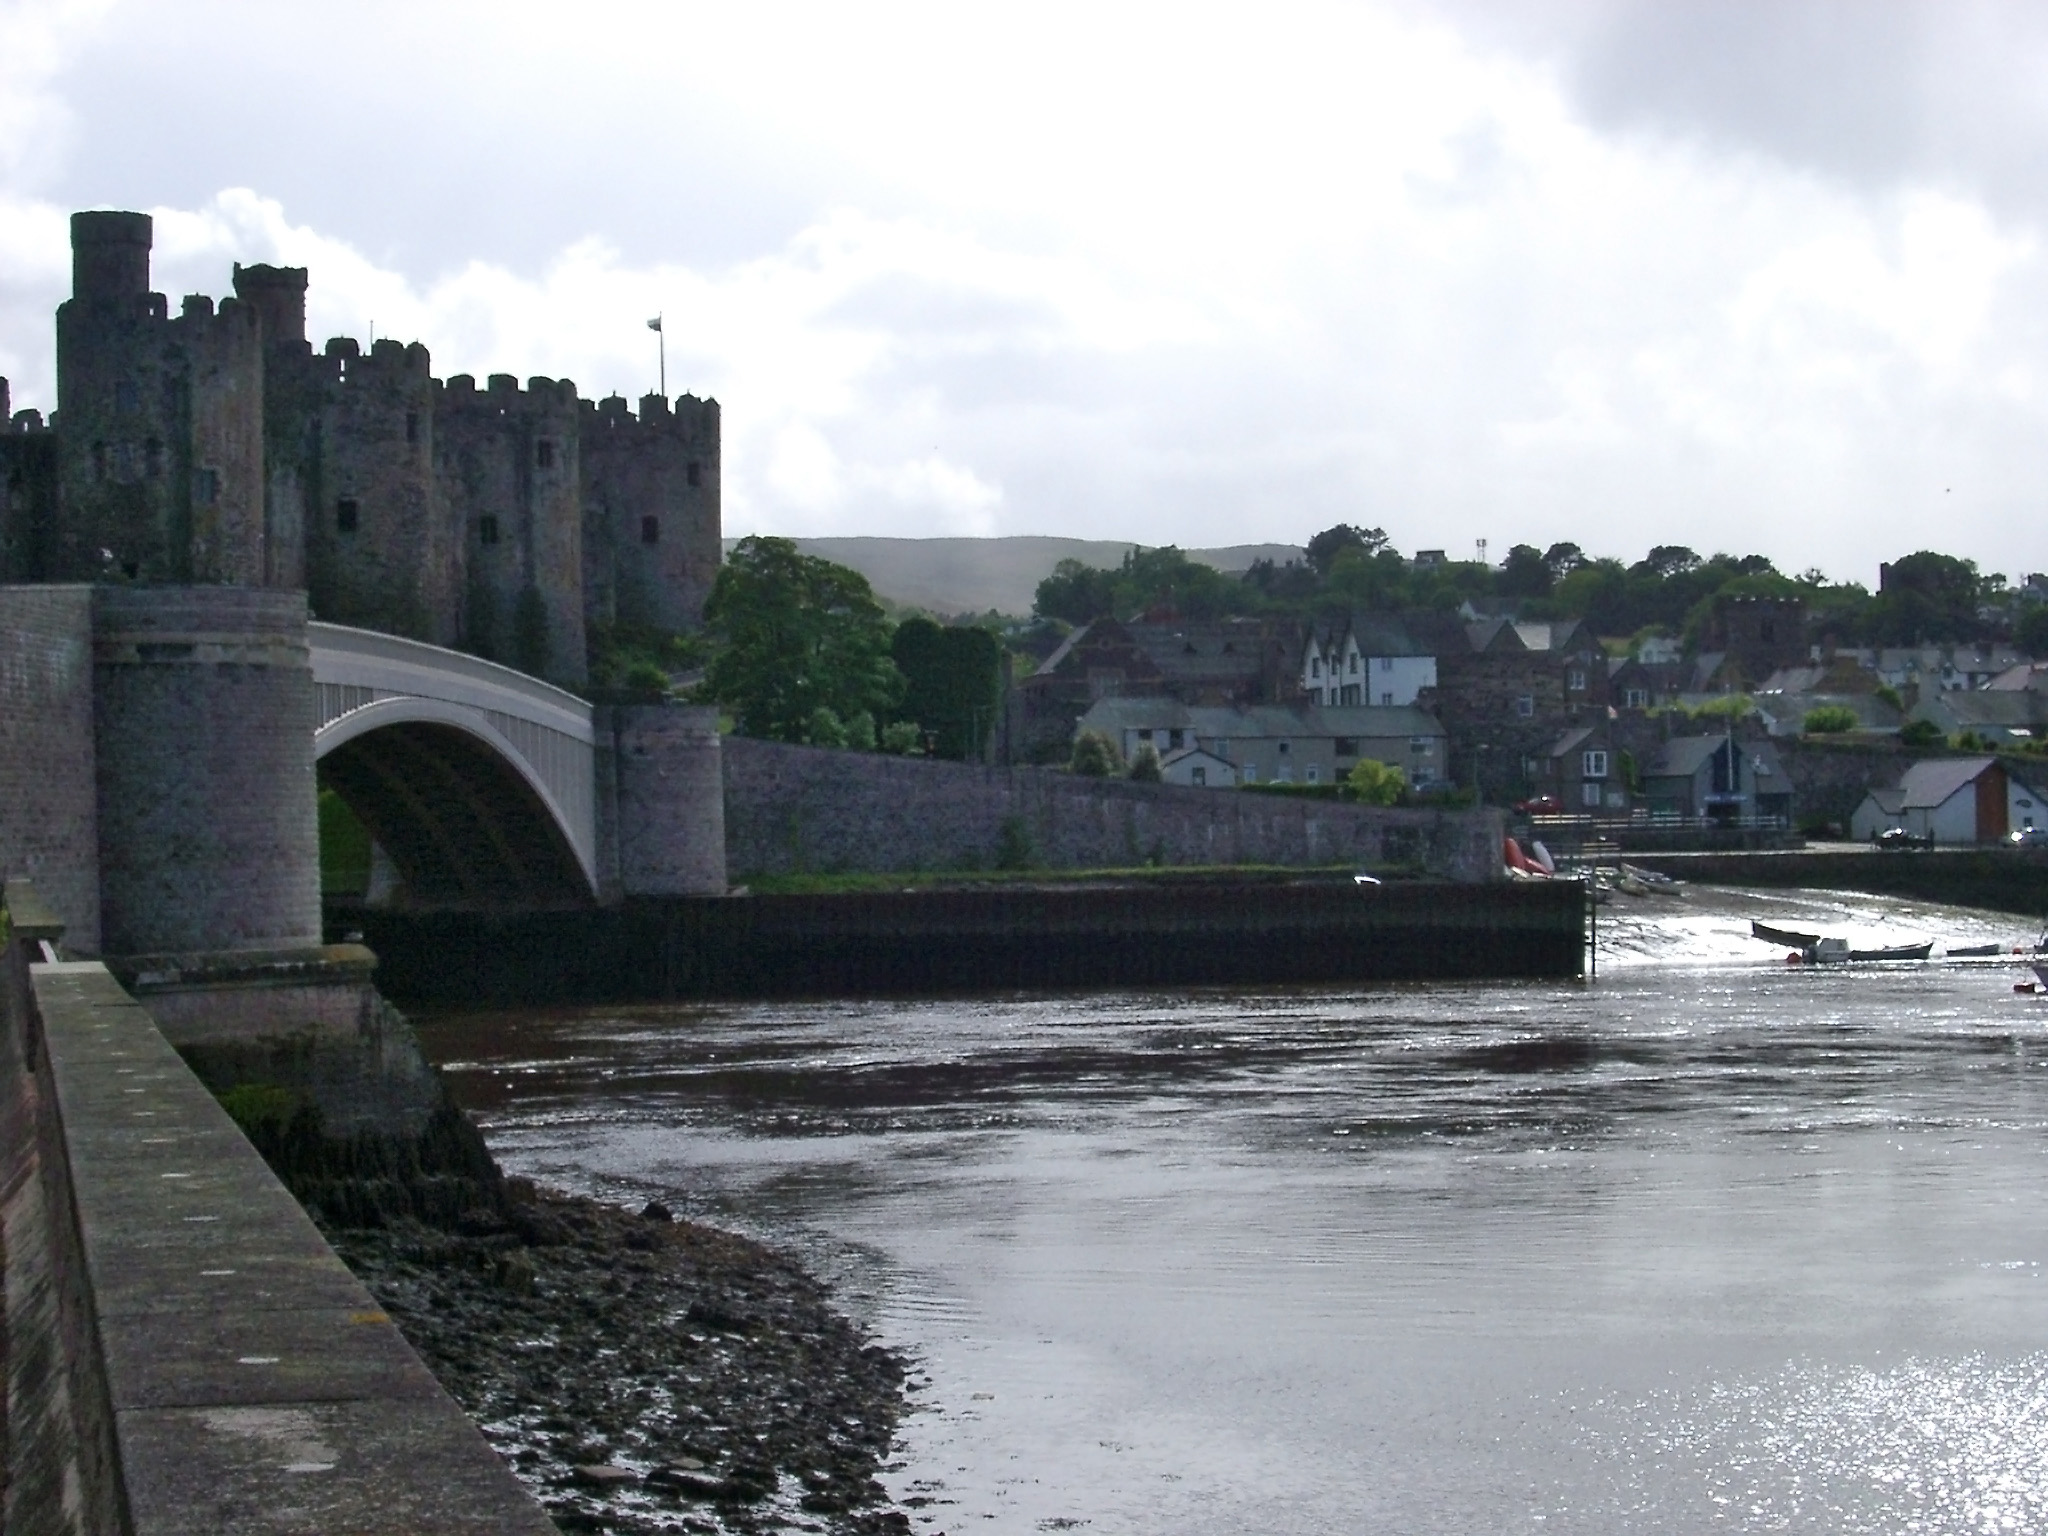 View of the Conway River Bridge Crossing the Beautiful Conway River in Wales.